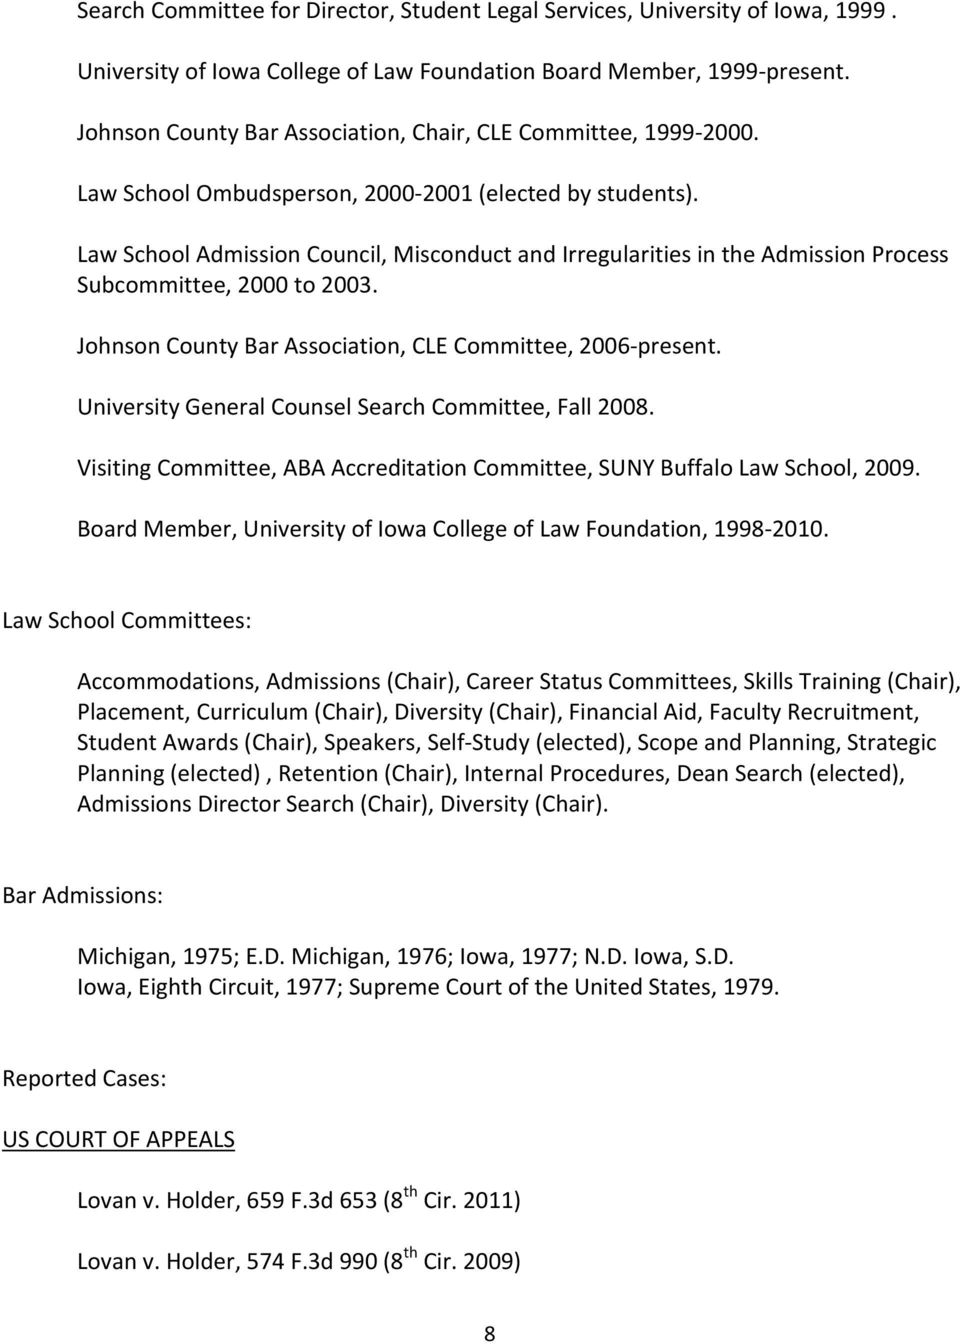 Law School Admission Council, Misconduct and Irregularities in the Admission Process Subcommittee, 2000 to 2003. Johnson County Bar Association, CLE Committee, 2006-present.